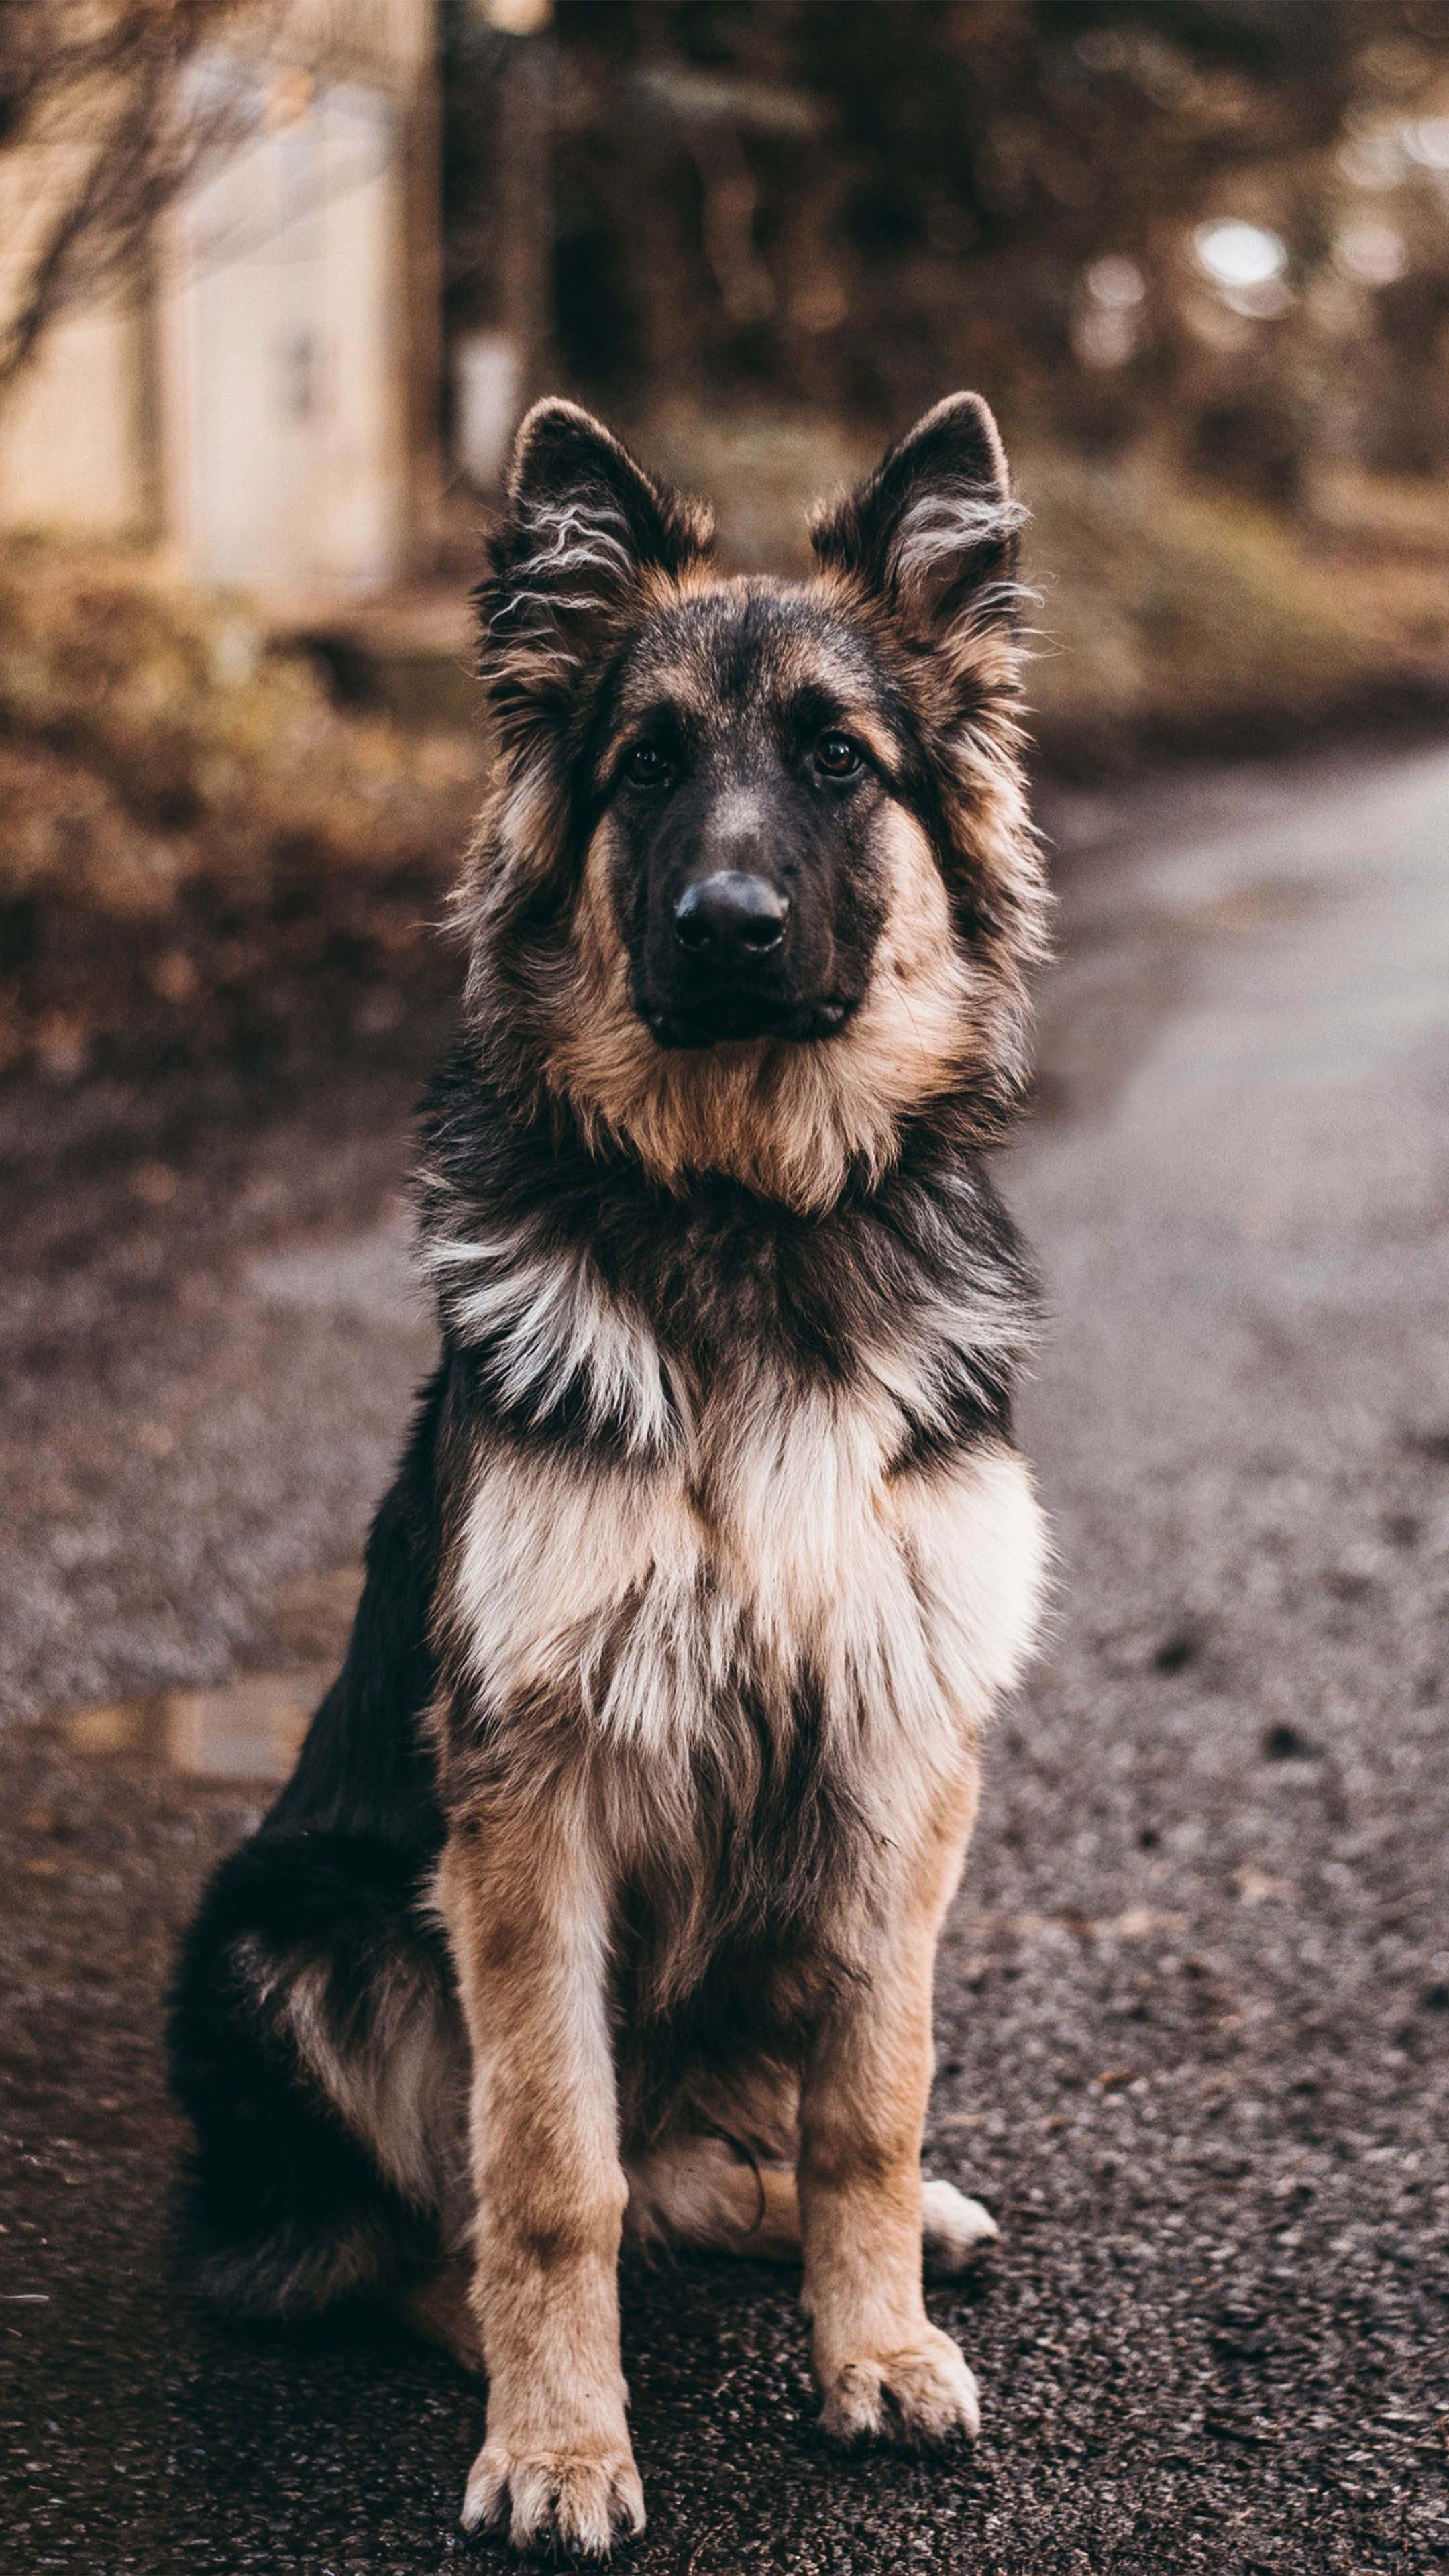 German Shepherd Dog Sits 4k Ultra Hd Mobile Wallpaper In 2020 Dog Background German Shepherd Dogs Dogs